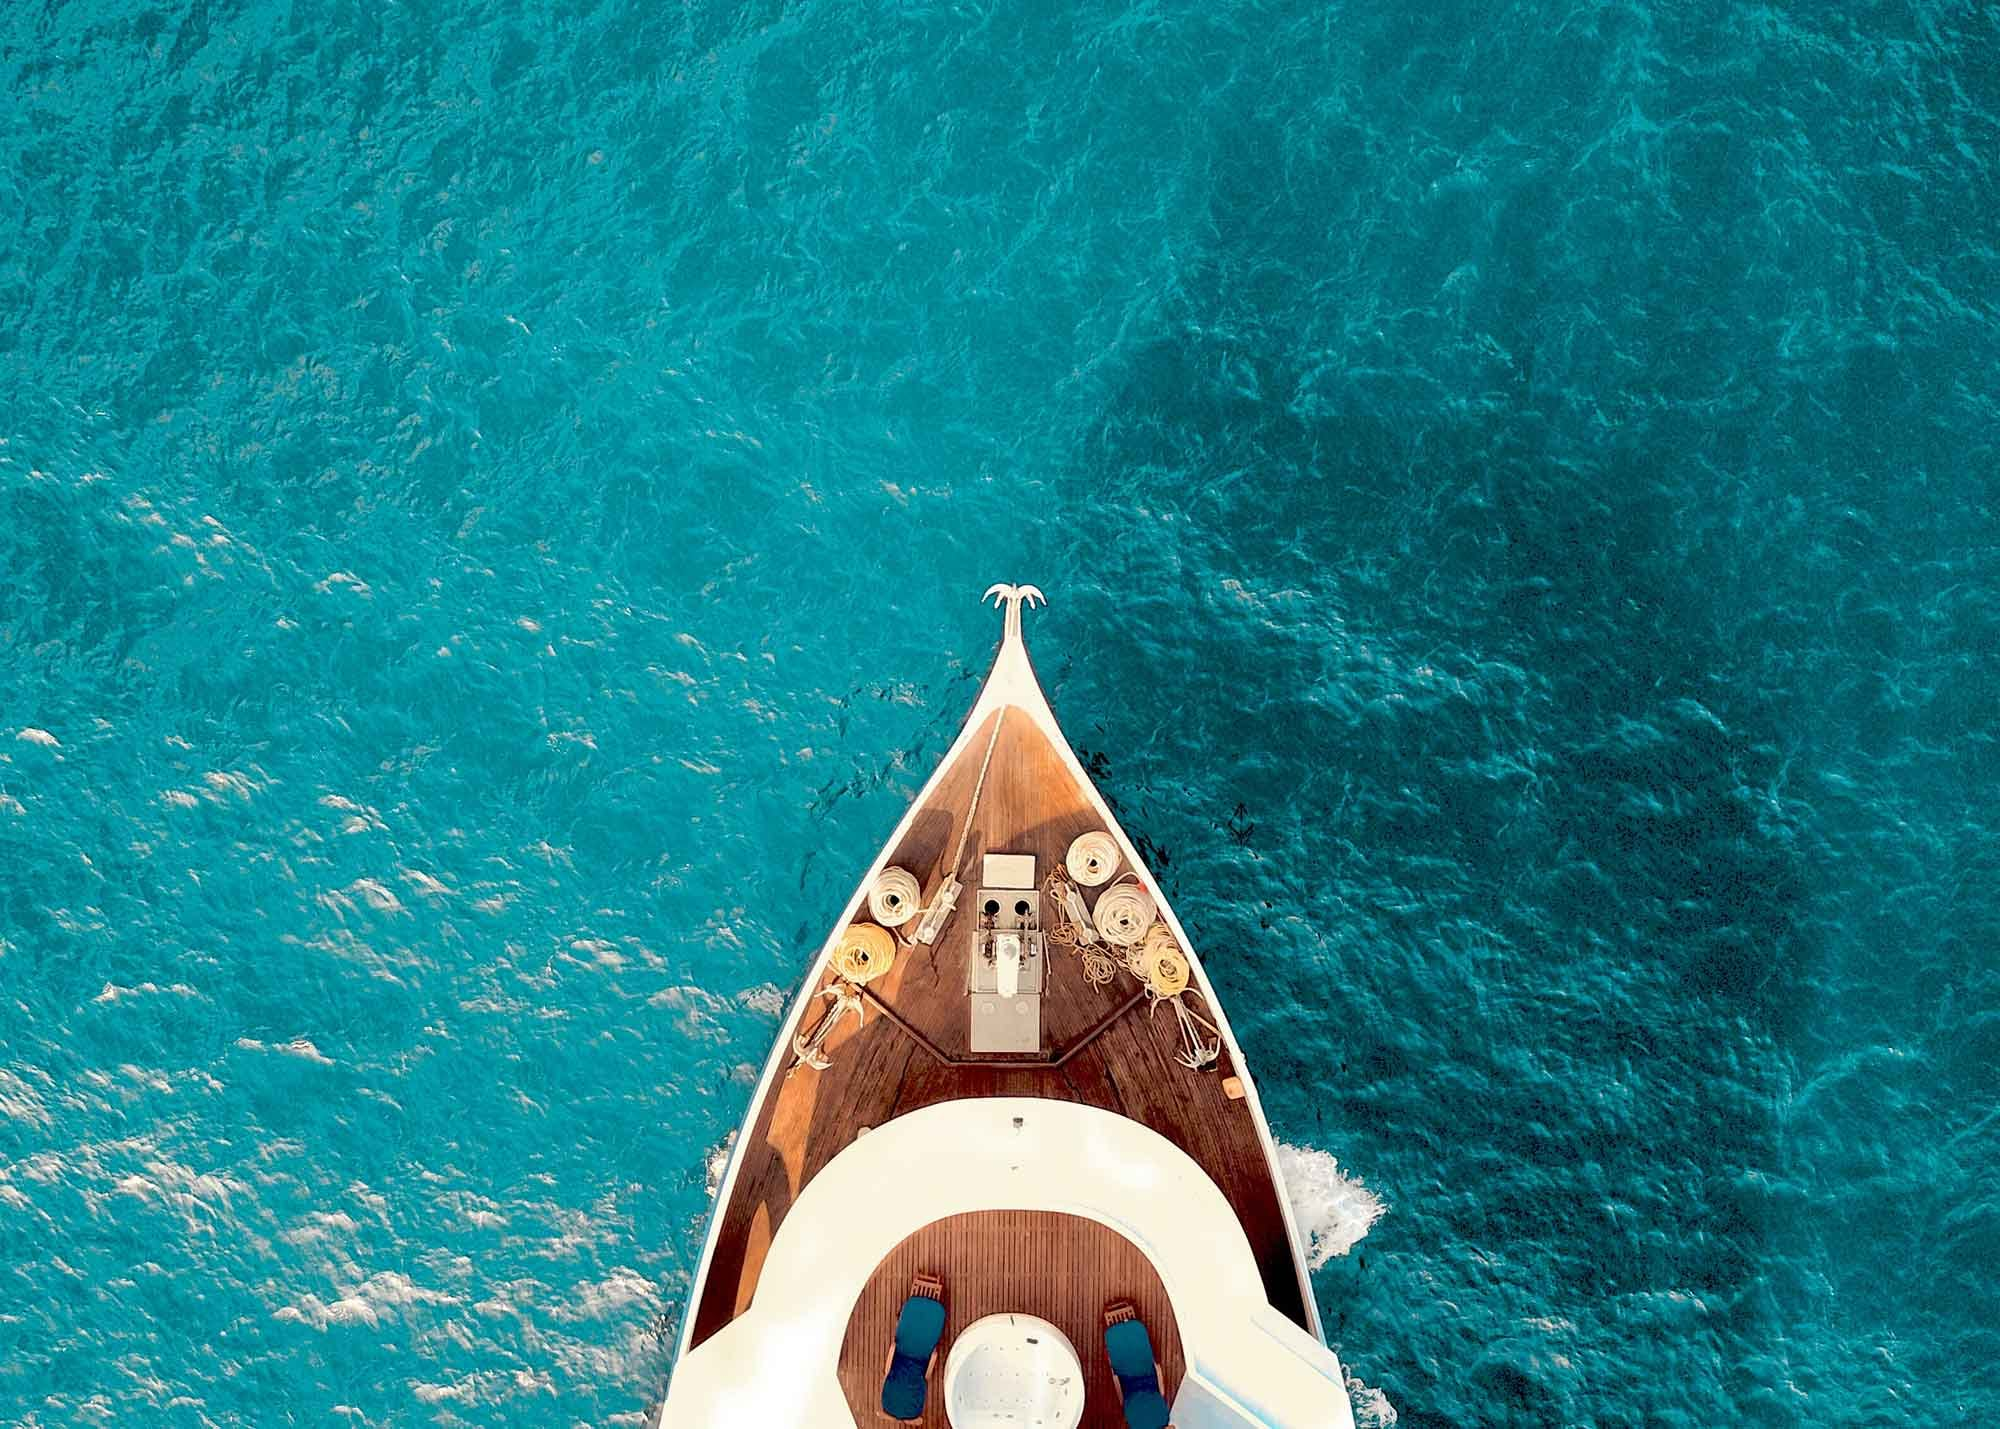 Yacht on blue water